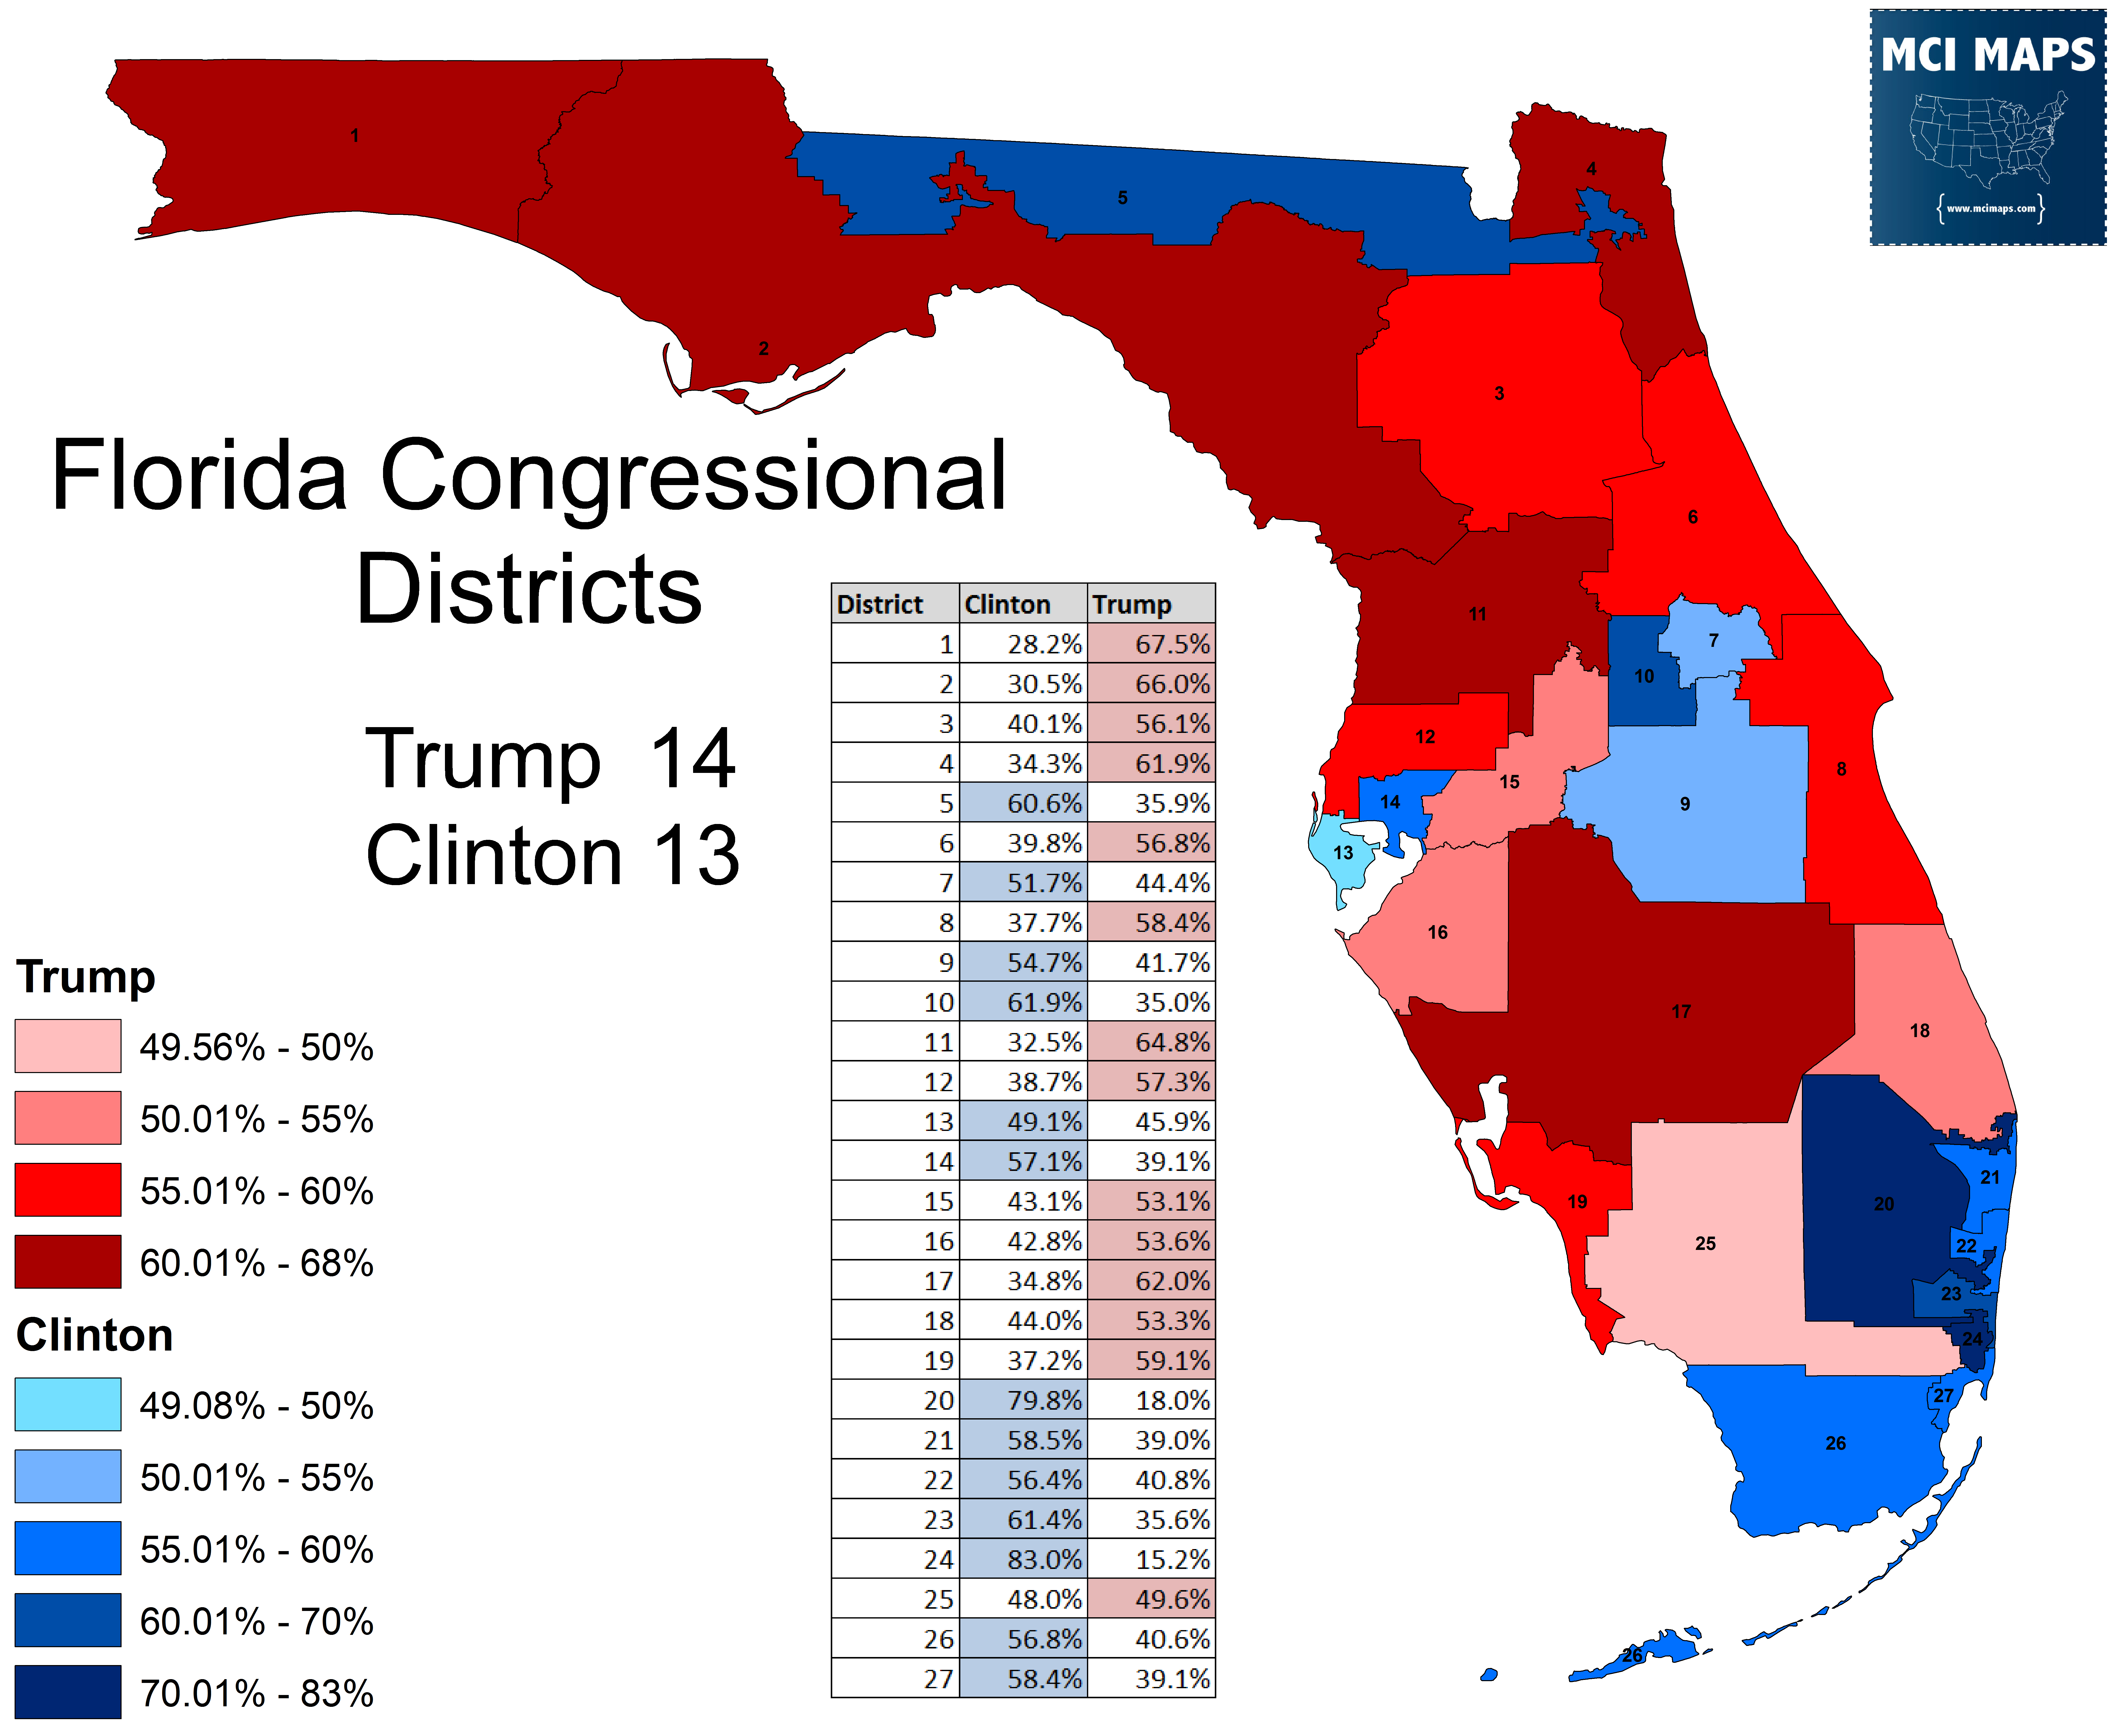 Current Map Of Florida.Florida S Congressional District Rankings For 2018 Mci Maps